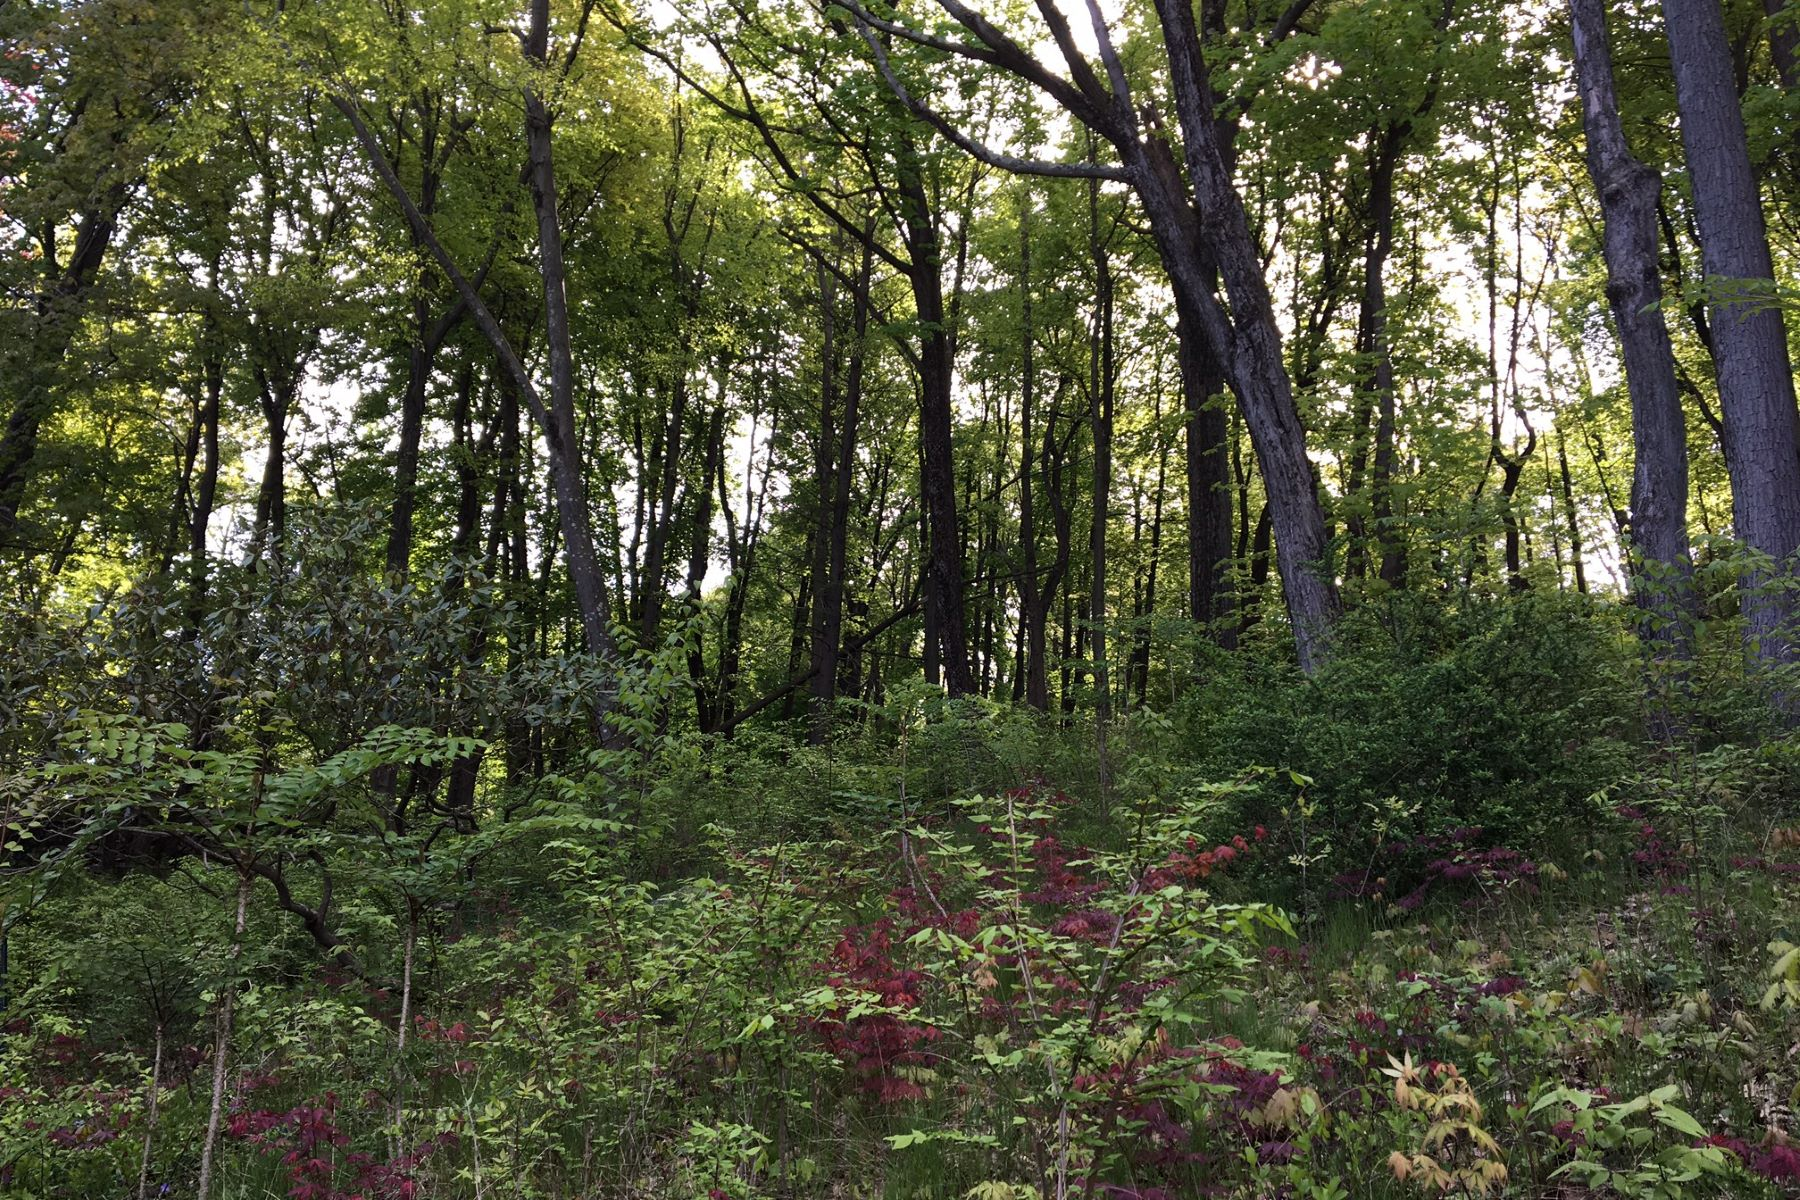 Property for Sale at Mountain Wood Pine Hill Road Tuxedo Park, New York 10987 United States